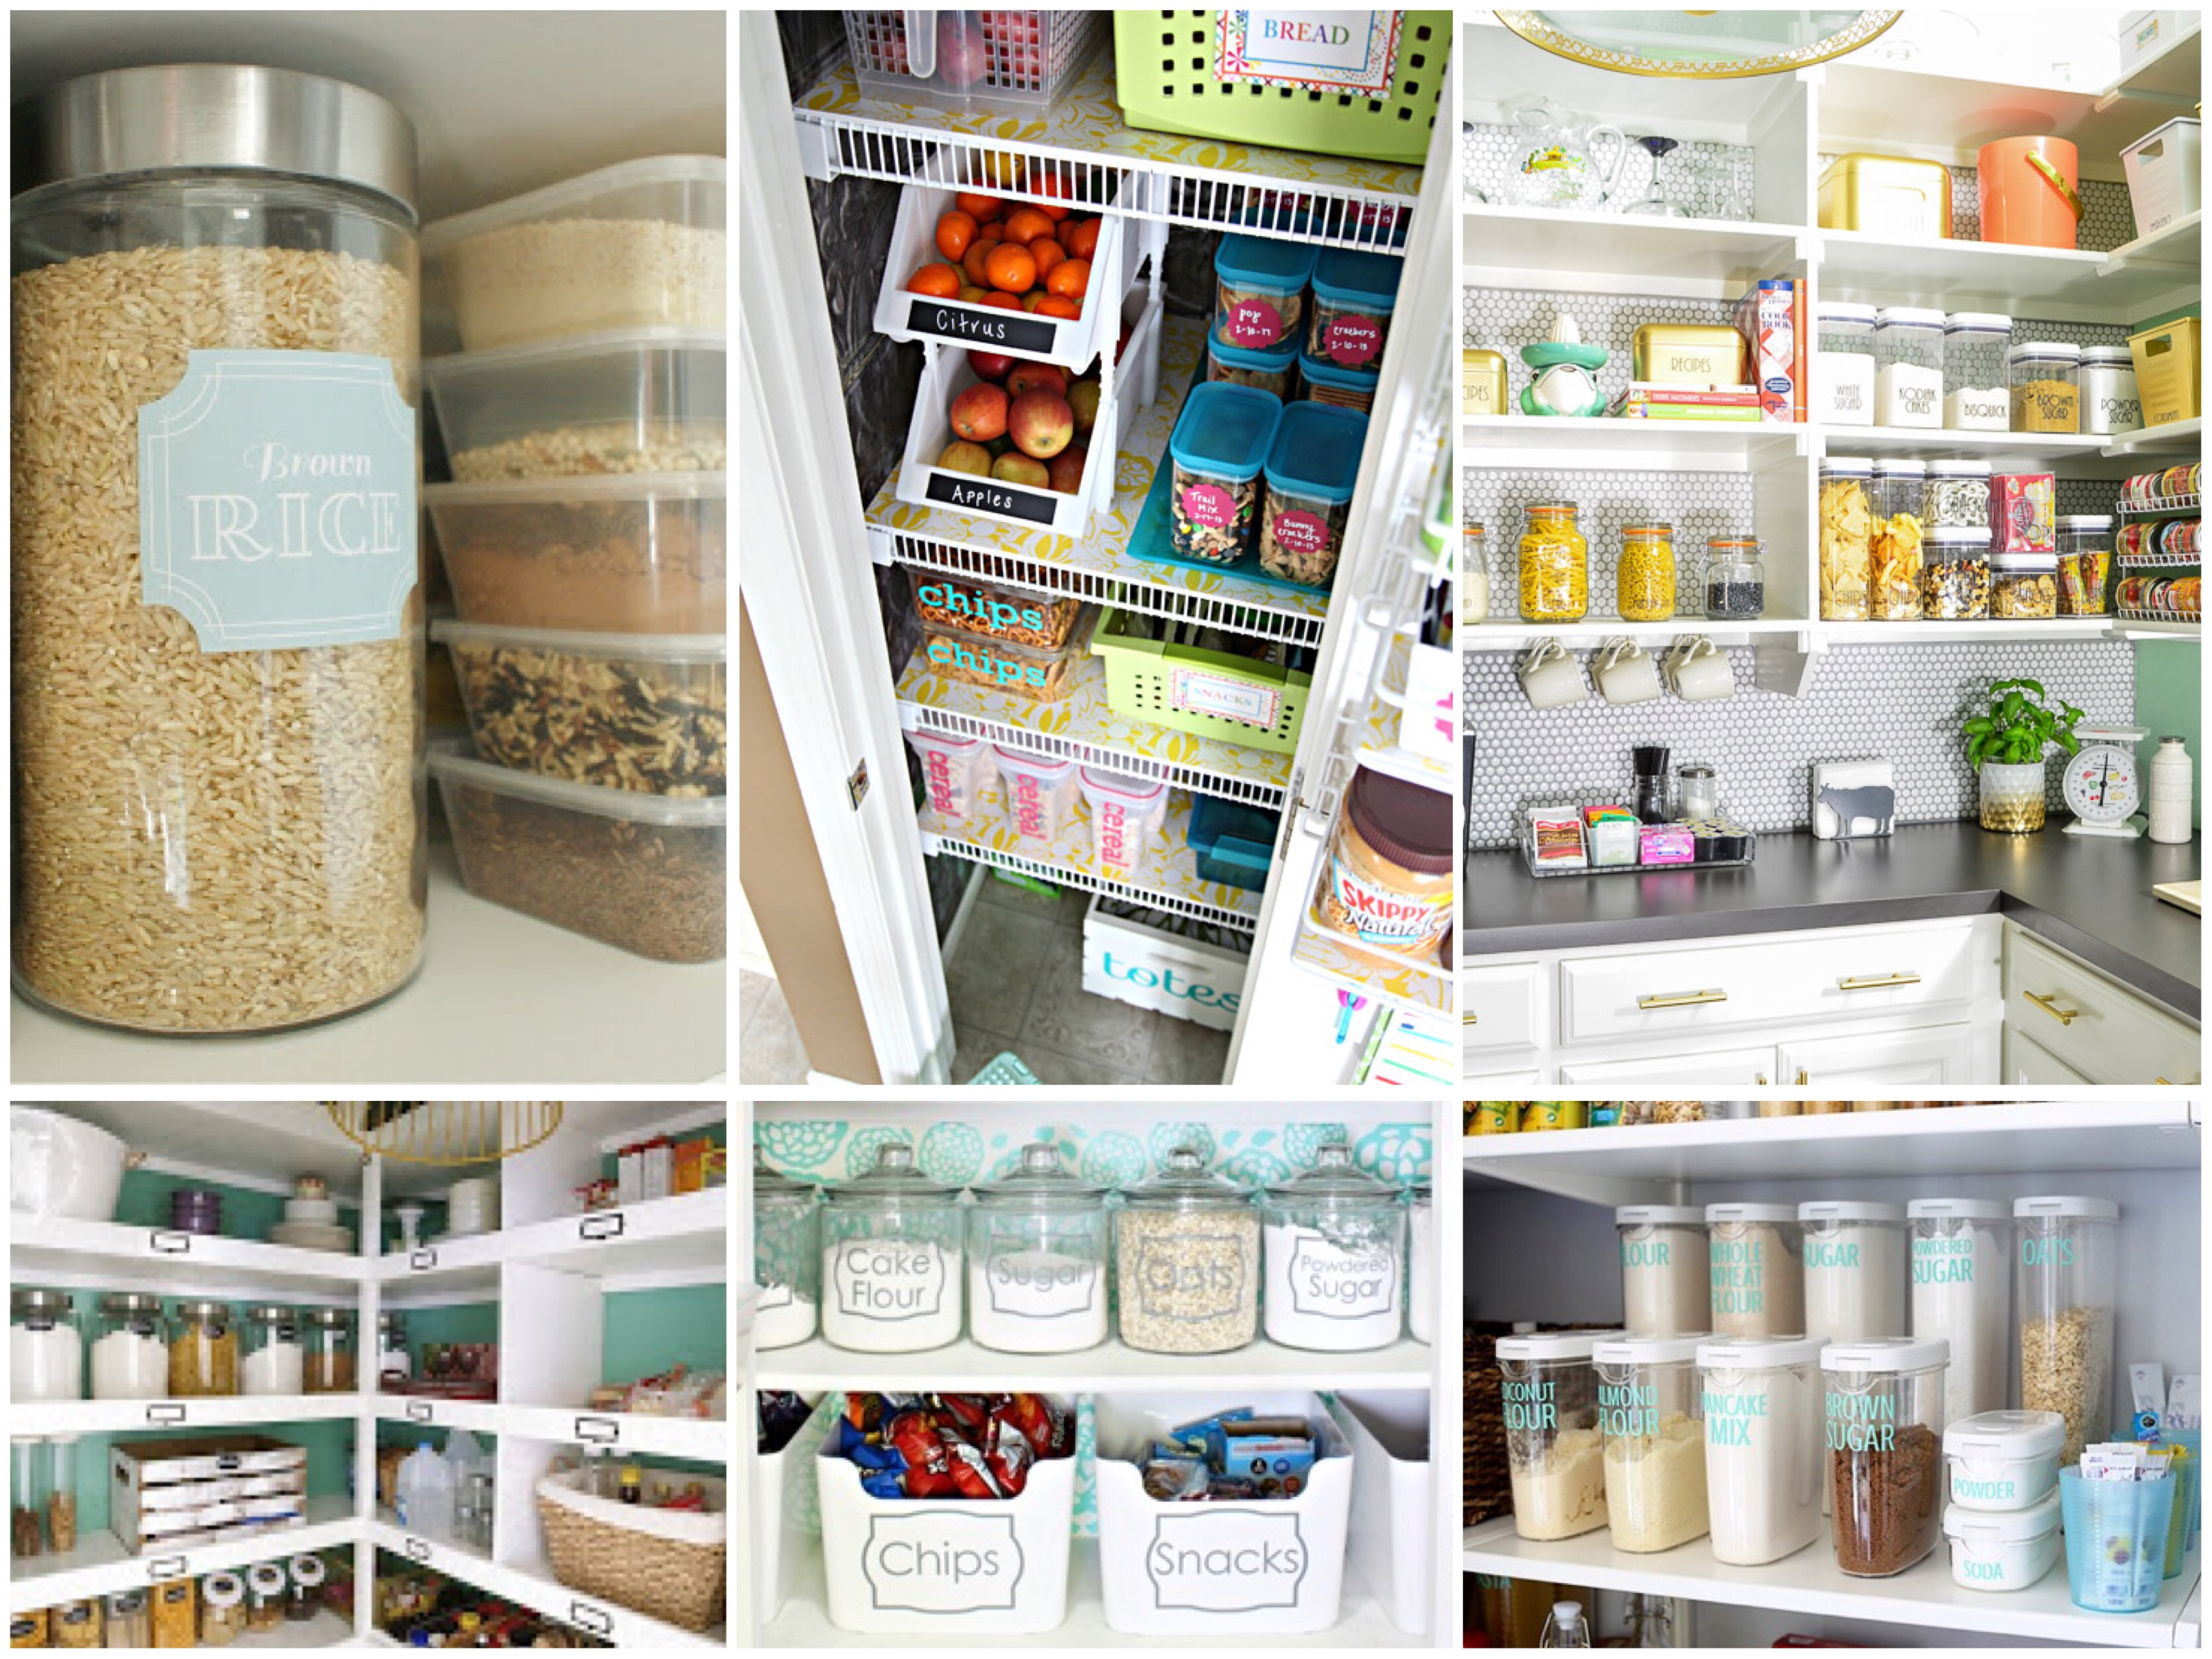 Having A Beautiful And Organized Pantry Can Make Meal Preparation So Much  Easier. No Longer Lose Cans Of Food In The Depths Of An Unorganized Pantry;  ...